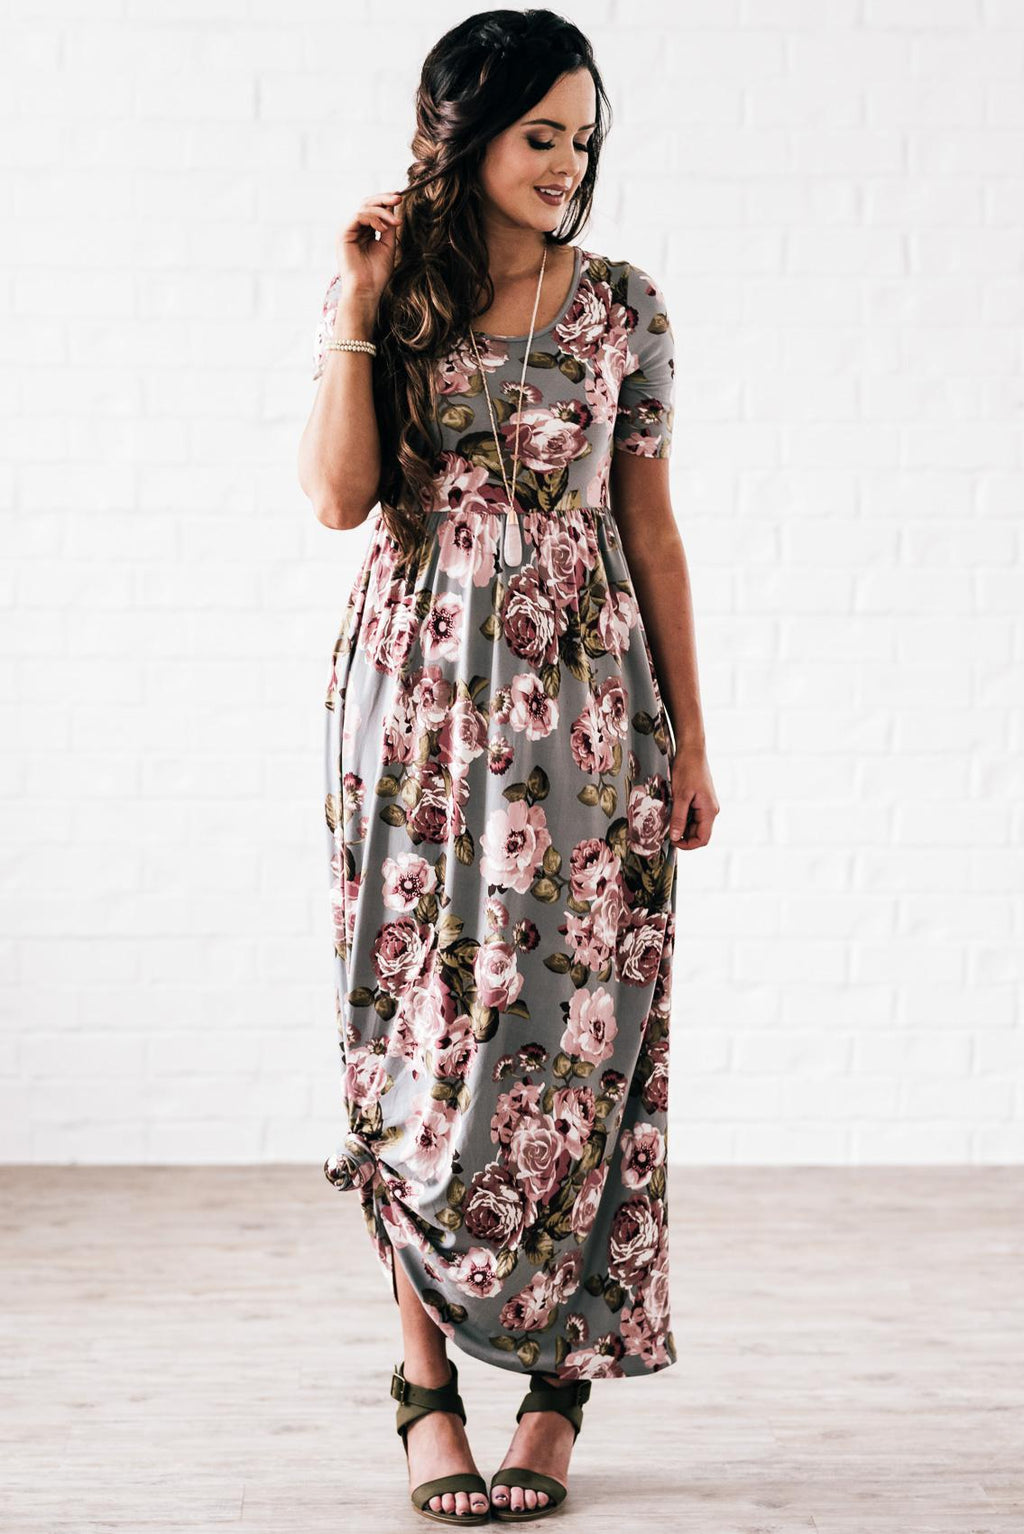 Miranda Grey Floral Modest Maxi Dress from A Closet Full of Dresses